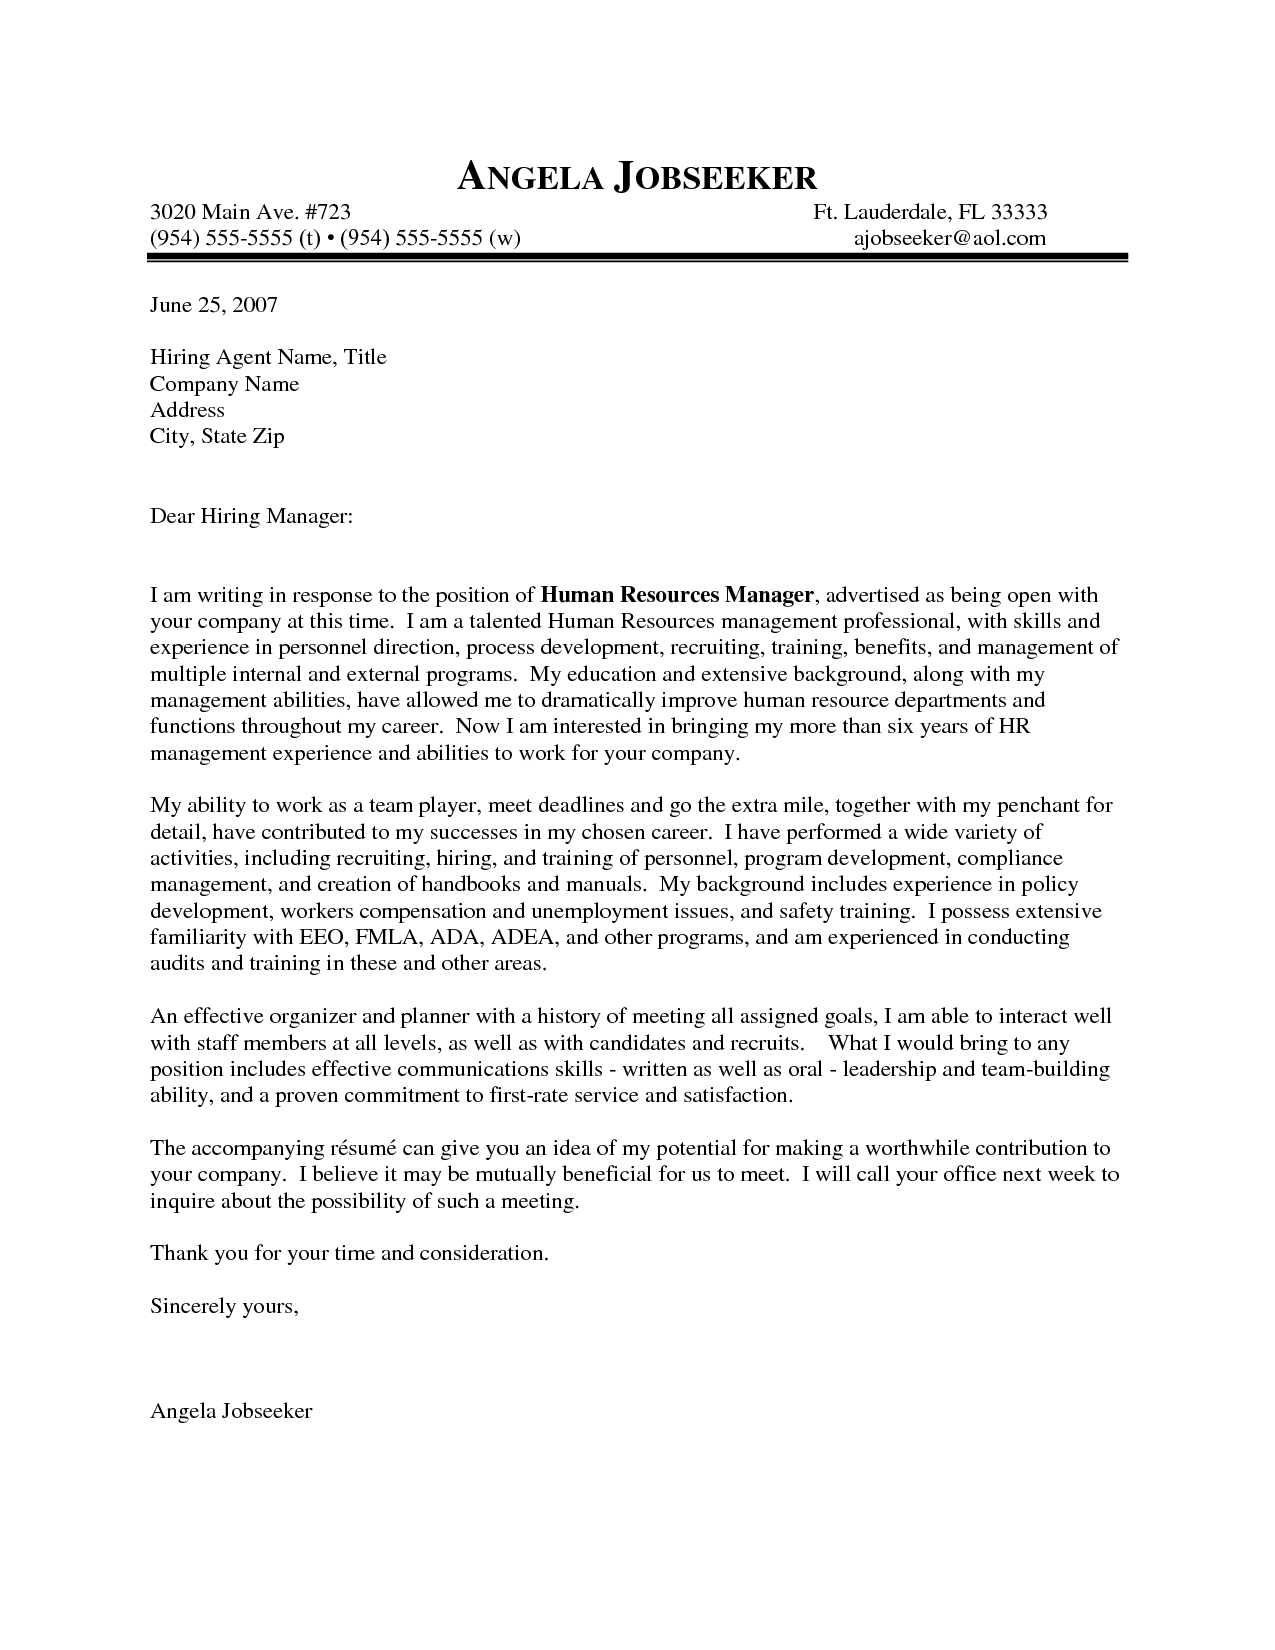 how to write a good cover letter for employment best sample cover letters need even more attention grabbing cover - Example Of Cover Letter Format